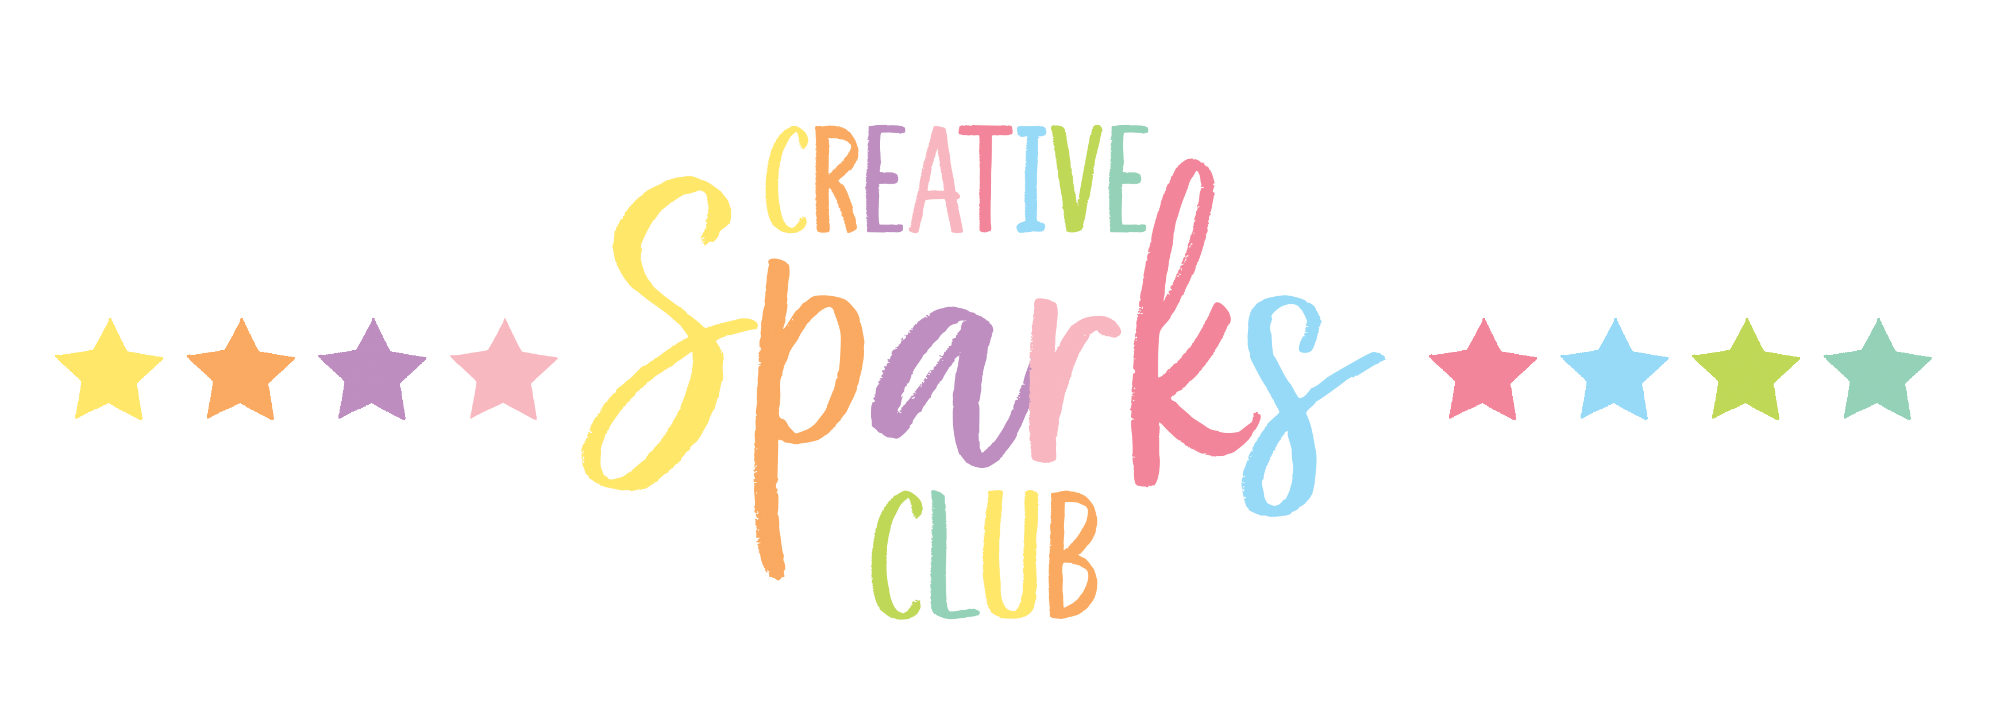 Creative Sparks Club is a supportive community for helping indie designer makers with creative businesses stay inspired.